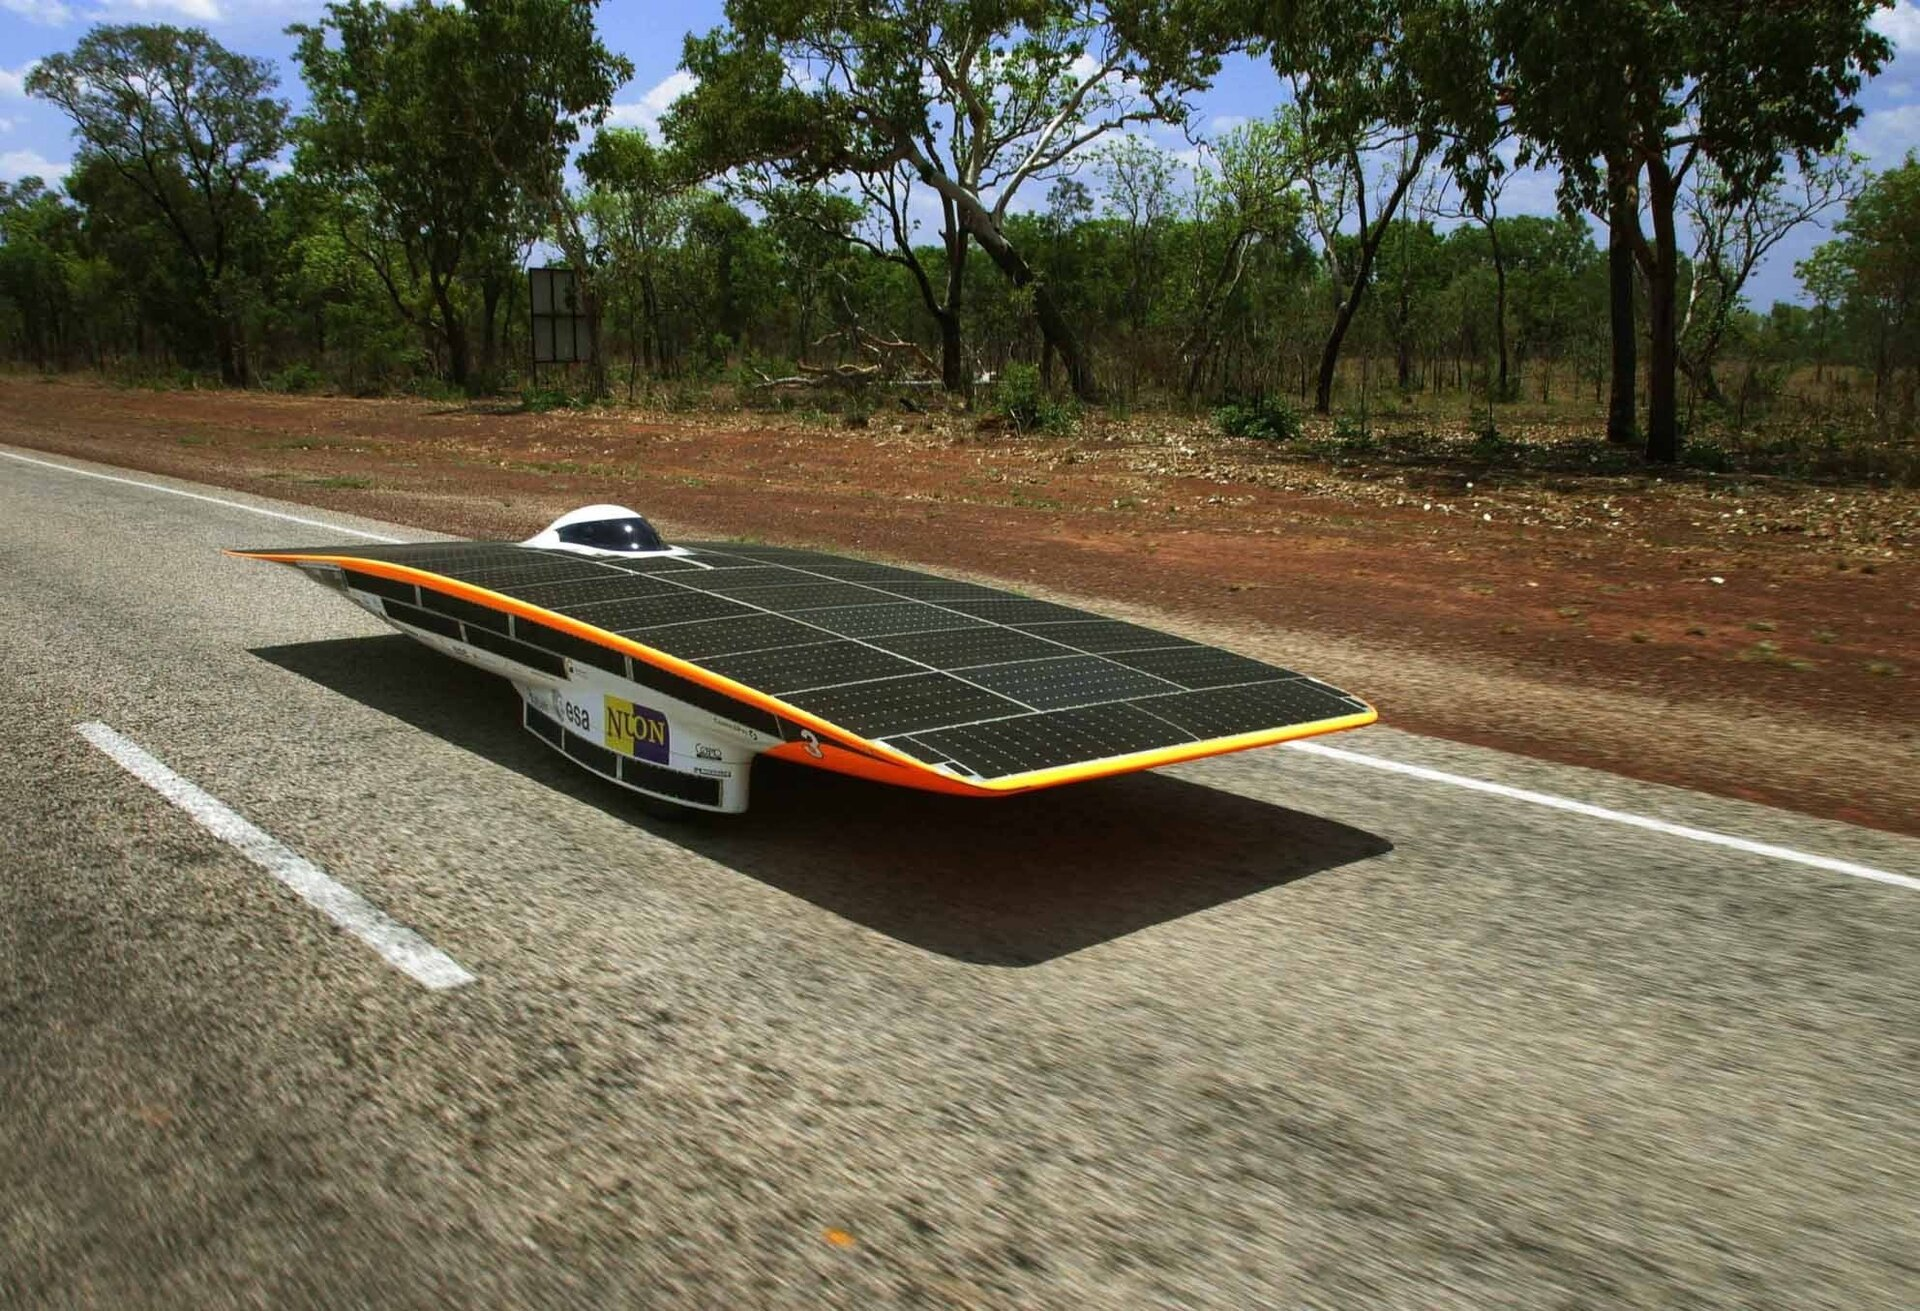 The Nuna II wins World Solar Challenge 2003 using space technologies